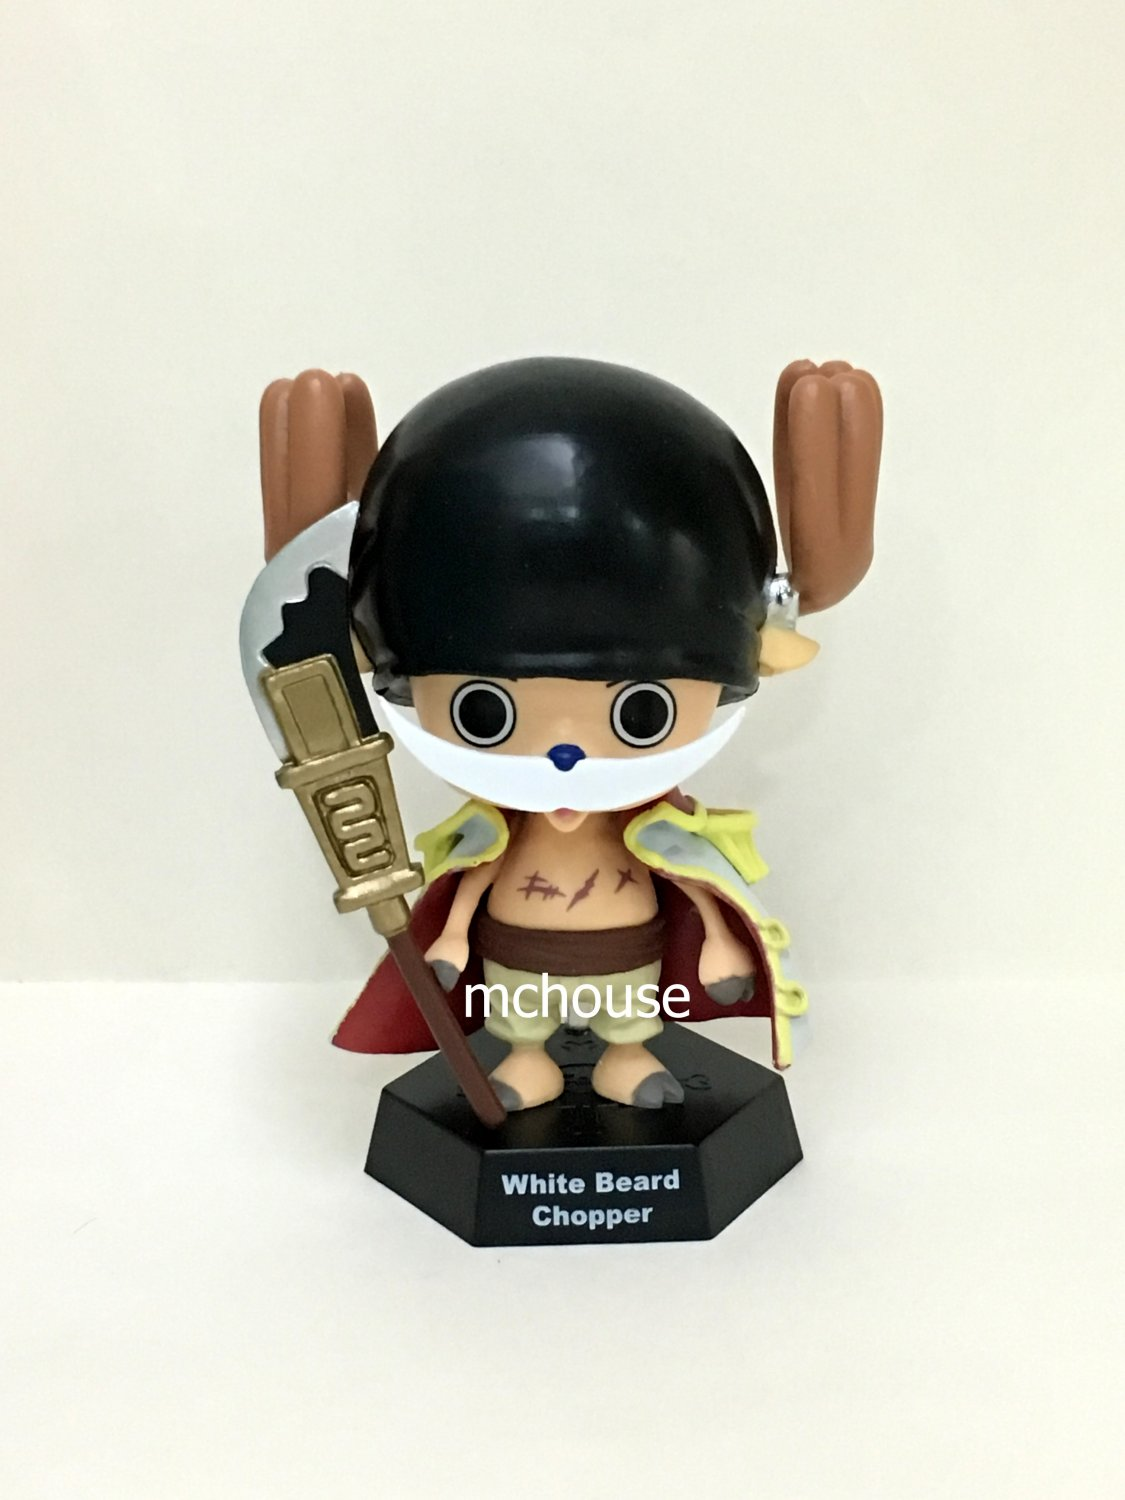 7-11 HK One Piece 2016 Chopper World Figures White Beard Chopper